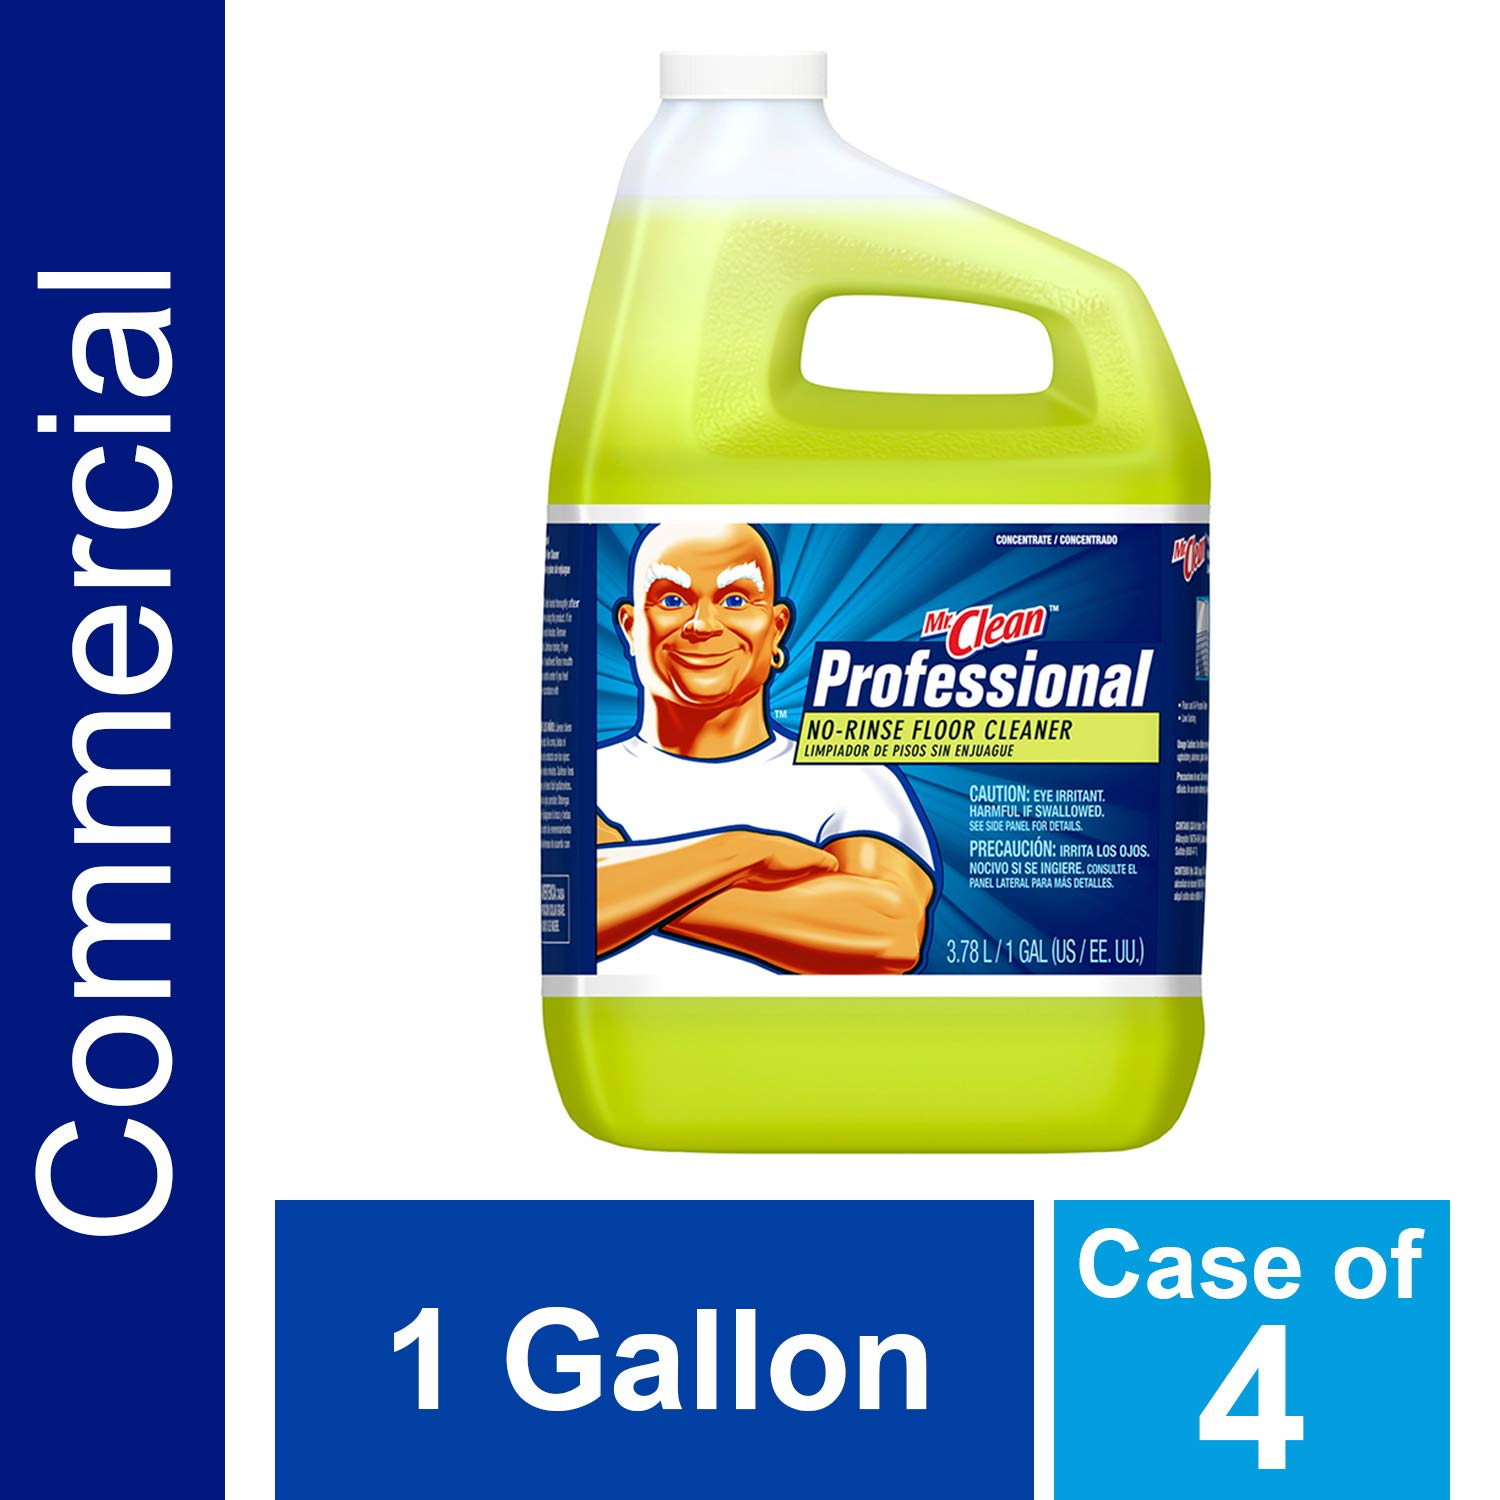 Floor Cleaner from Mr. Clean Professional, Bulk No-Rinse Ready to Use Cleaner Refill for Commercial Use, 1 Gal. (Case of 4)